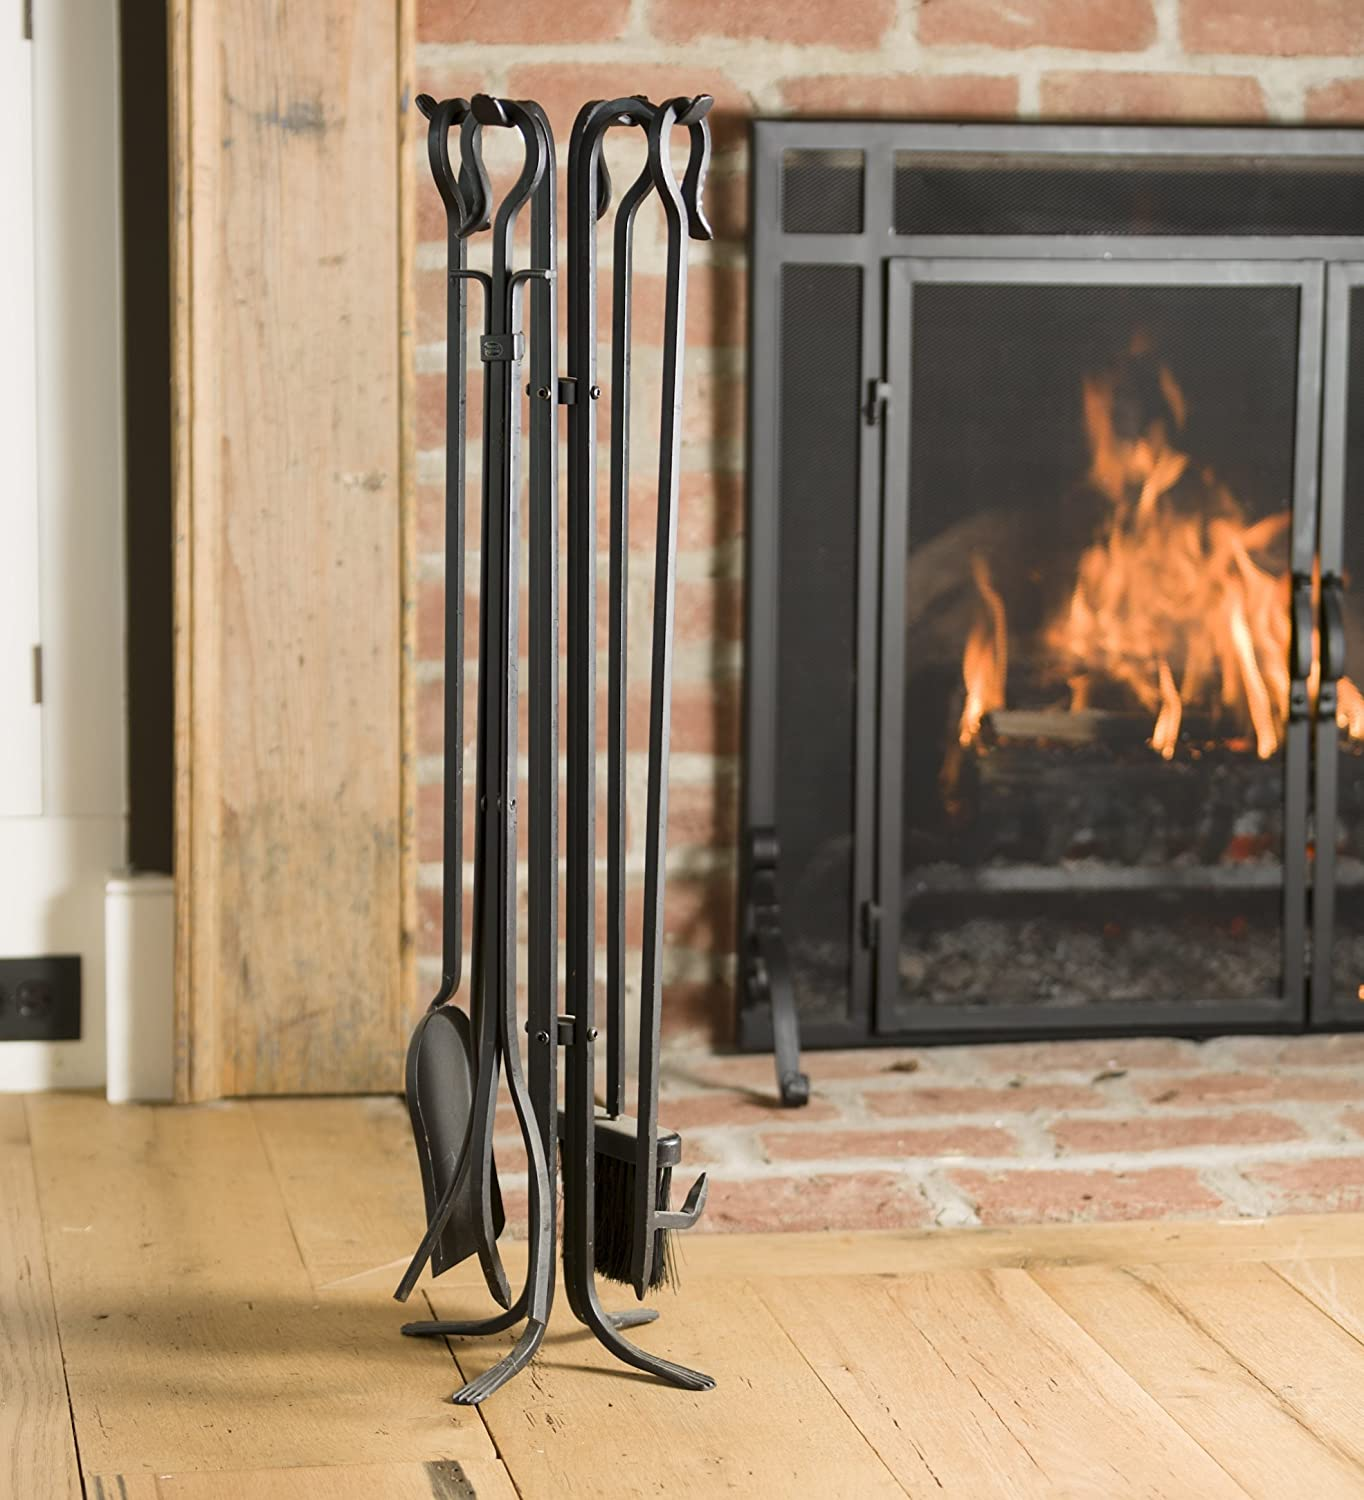 ideas gallery broom on budget home under interior in room renovation a creative fireplace beautiful